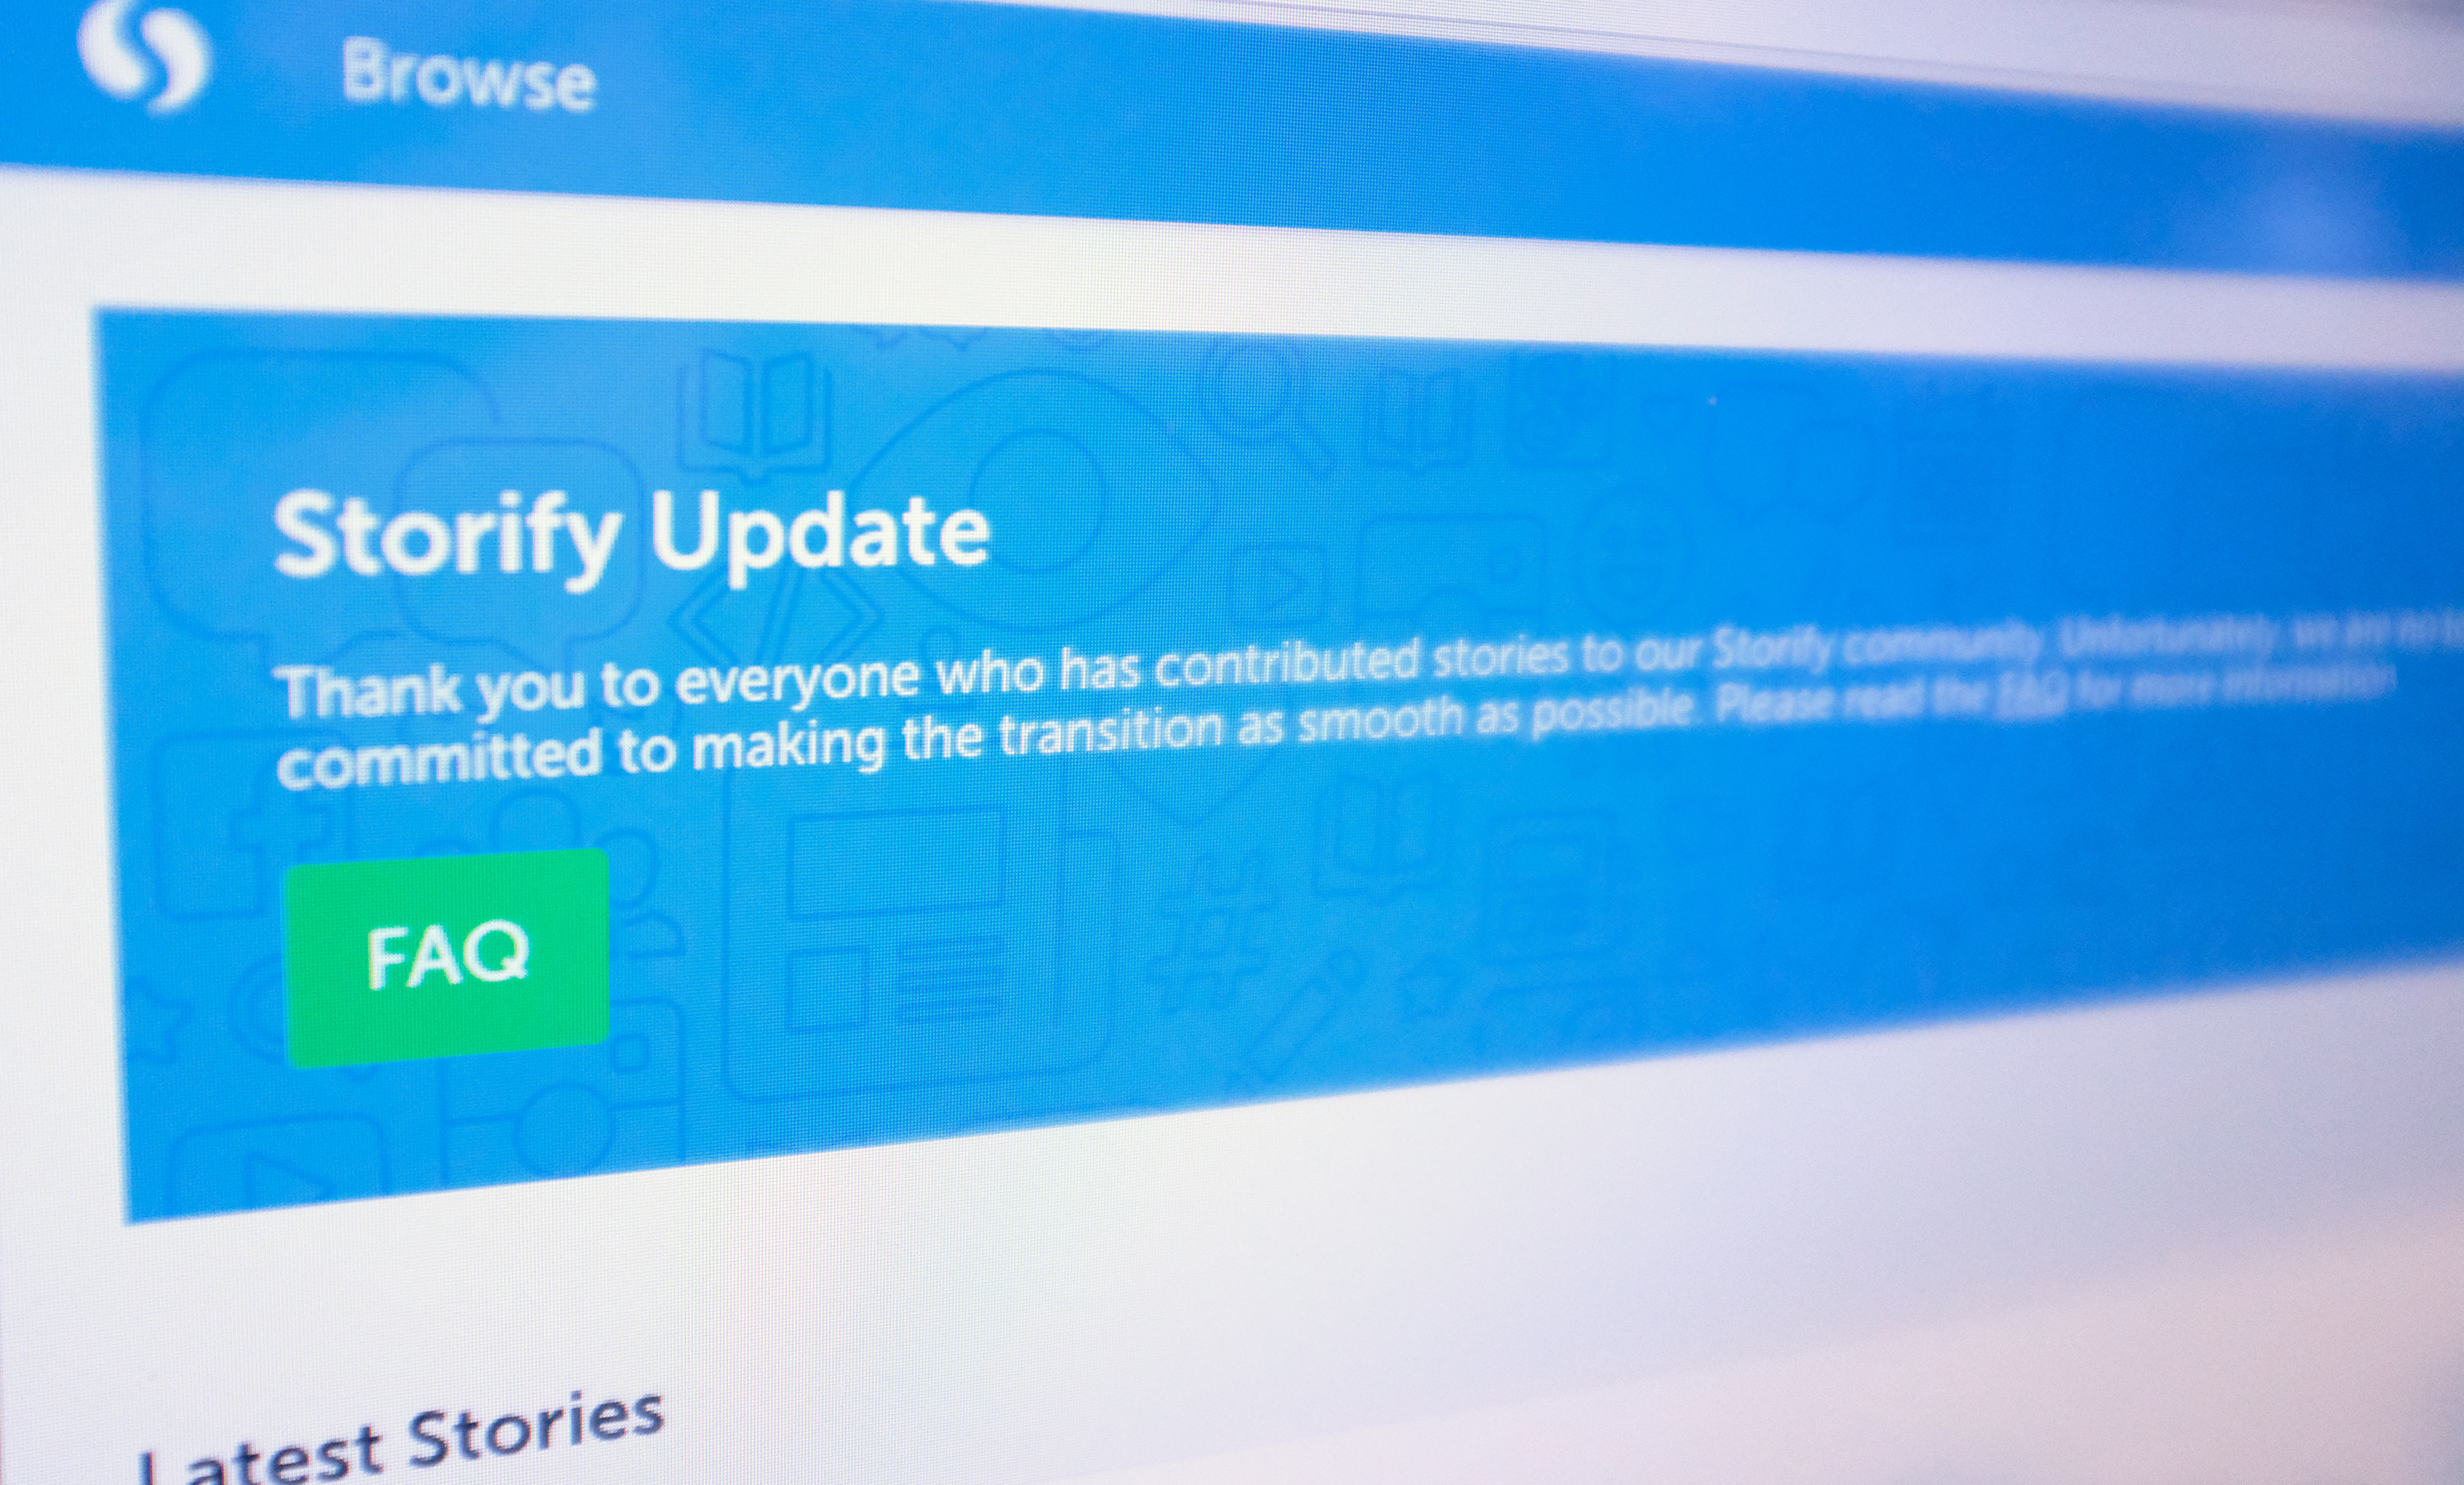 Storify's standalone service is shutting down next year